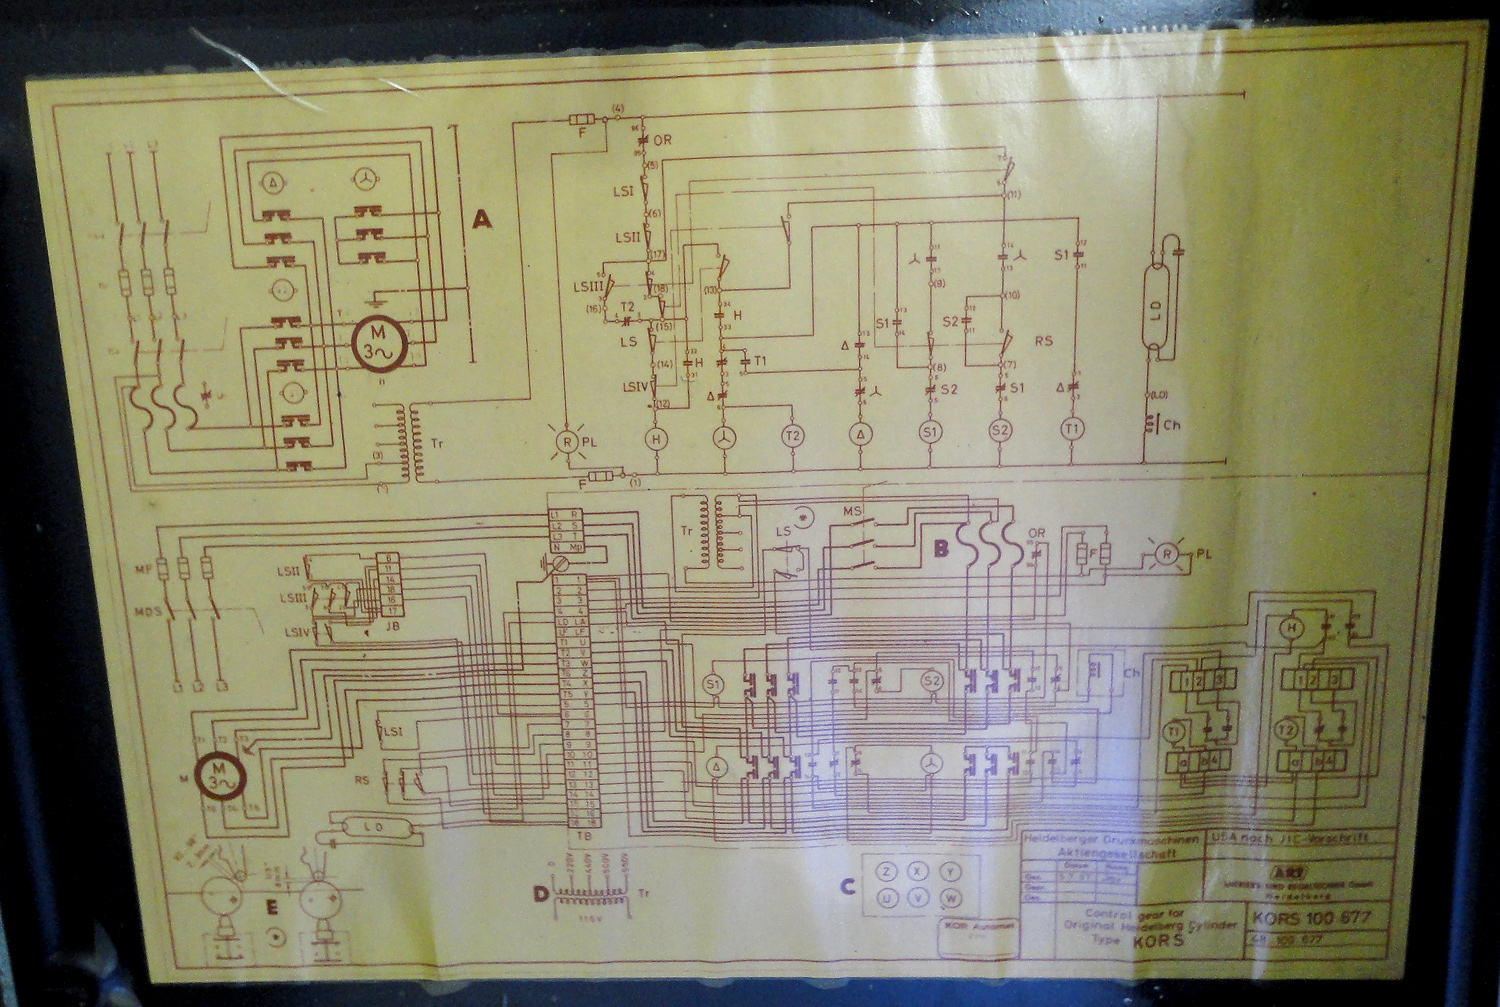 kord 64 schematic wire diagram needed badly color printing forum